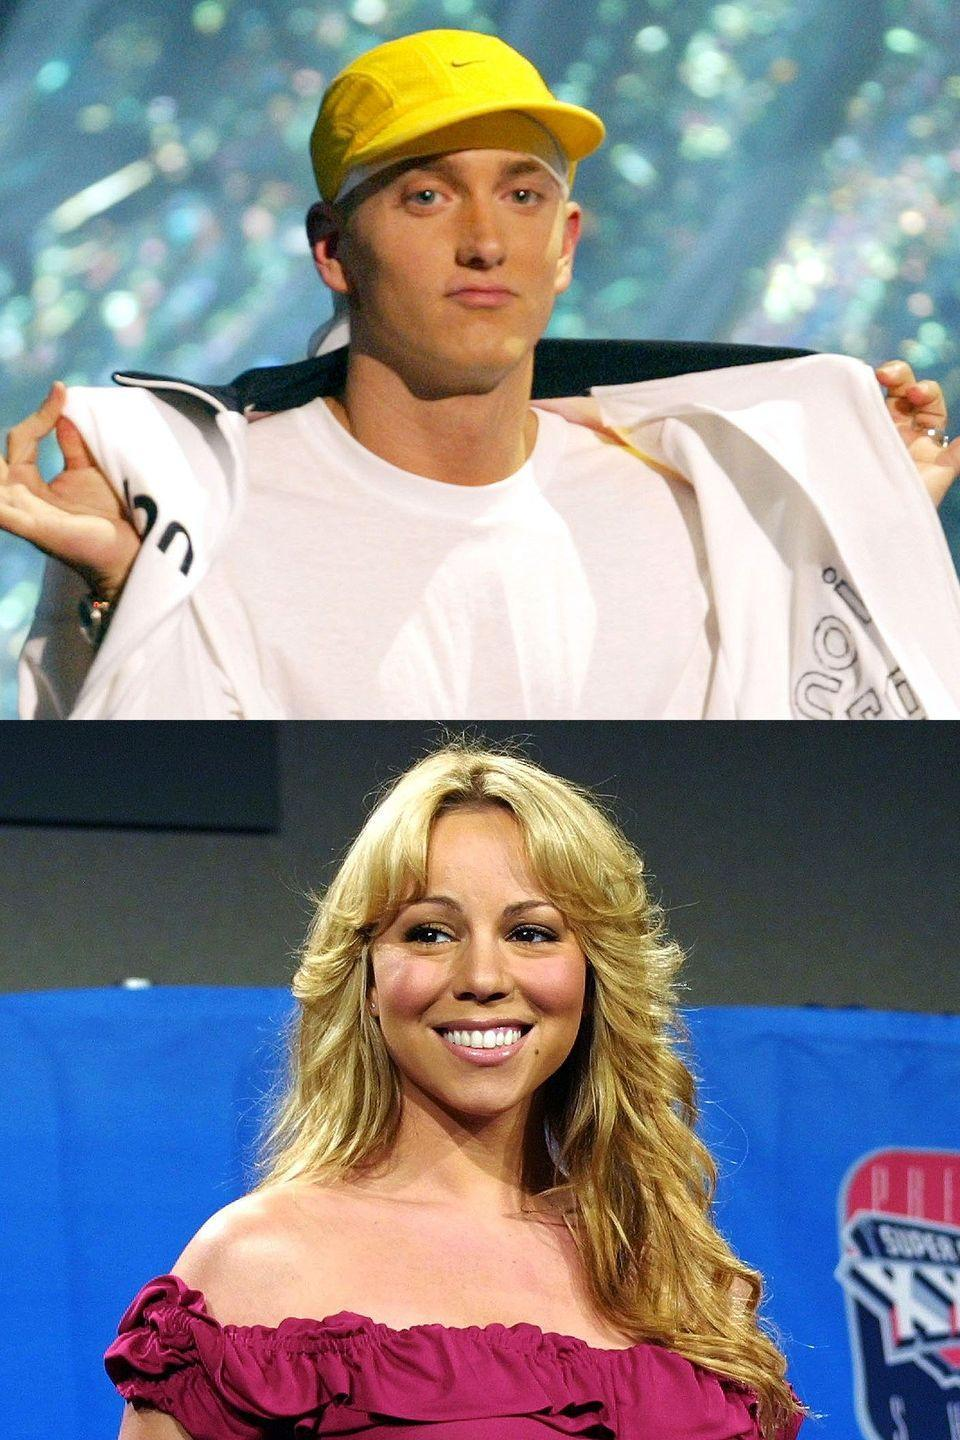 "<p>In 2001, the rapper met with Carey to talk about laying down a track together and that somehow turned into dating for a bit—at least according to him. Asked about the rumor <a href=""http://people.com/celebrity/eminem-disses-mariah-for-denying-relationship/"" rel=""nofollow noopener"" target=""_blank"" data-ylk=""slk:by Rolling Stone"" class=""link rapid-noclick-resp"">by <em>Rolling Stone</em></a>, he said, ""There's truth to that. But on the whole personal level, I'm not really feeling it. I just don't like her as a person."" He took two more shots at her on his album <em>The Eminem Show</em> that year, including implying that she flew her private jet to meet him twice, ""trying to be [his] new wife."" Mariah denied dating him—""I think I was probably with him a total of four times""—and the two have traded barbs ever since.</p>"